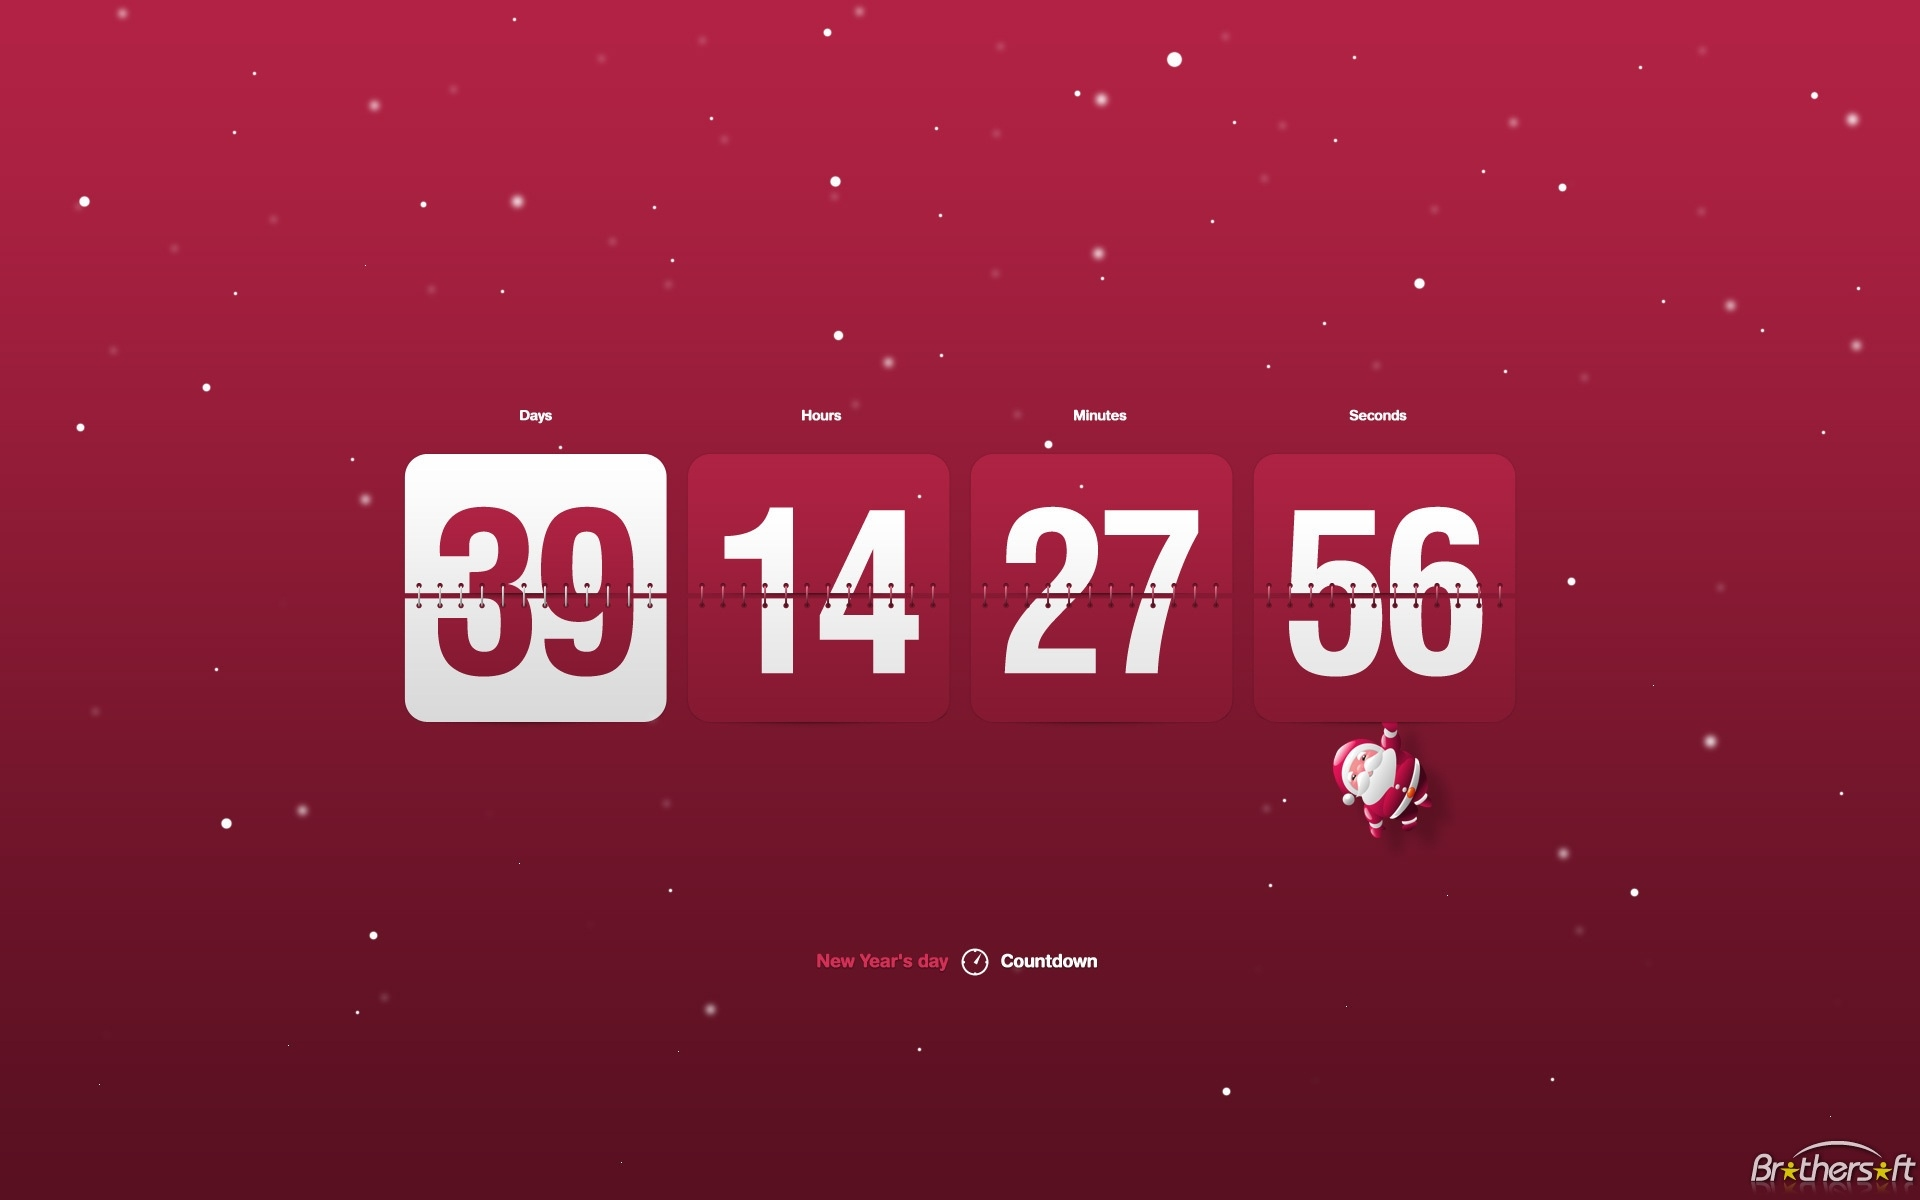 49+] Desktop Wallpaper Countdown Timer On Wallpapersafari_Calendar Countdown For Desktop